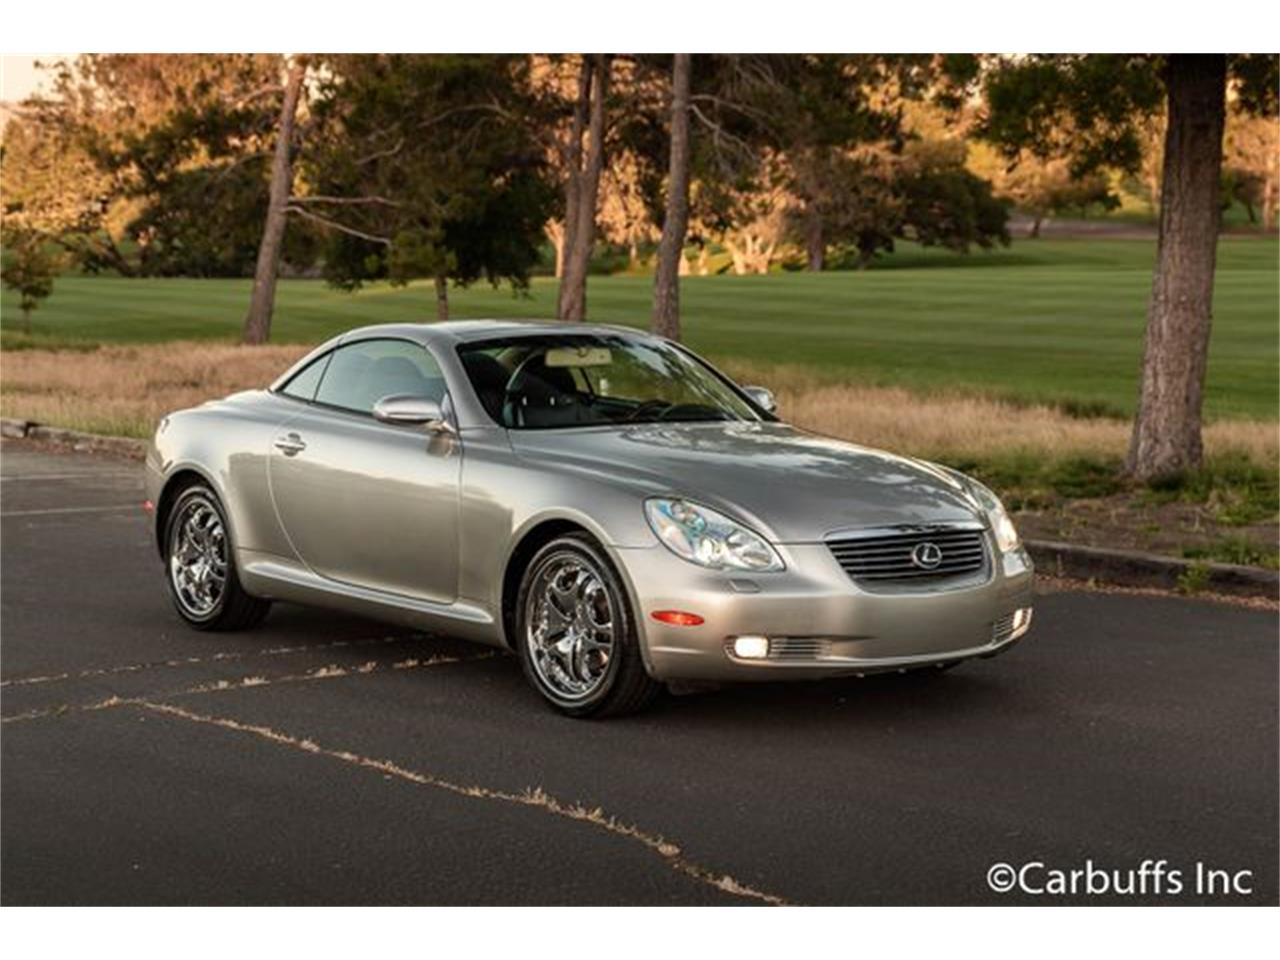 Large Picture of 2004 Lexus SC400 located in Concord California - $14,950.00 - Q5AJ